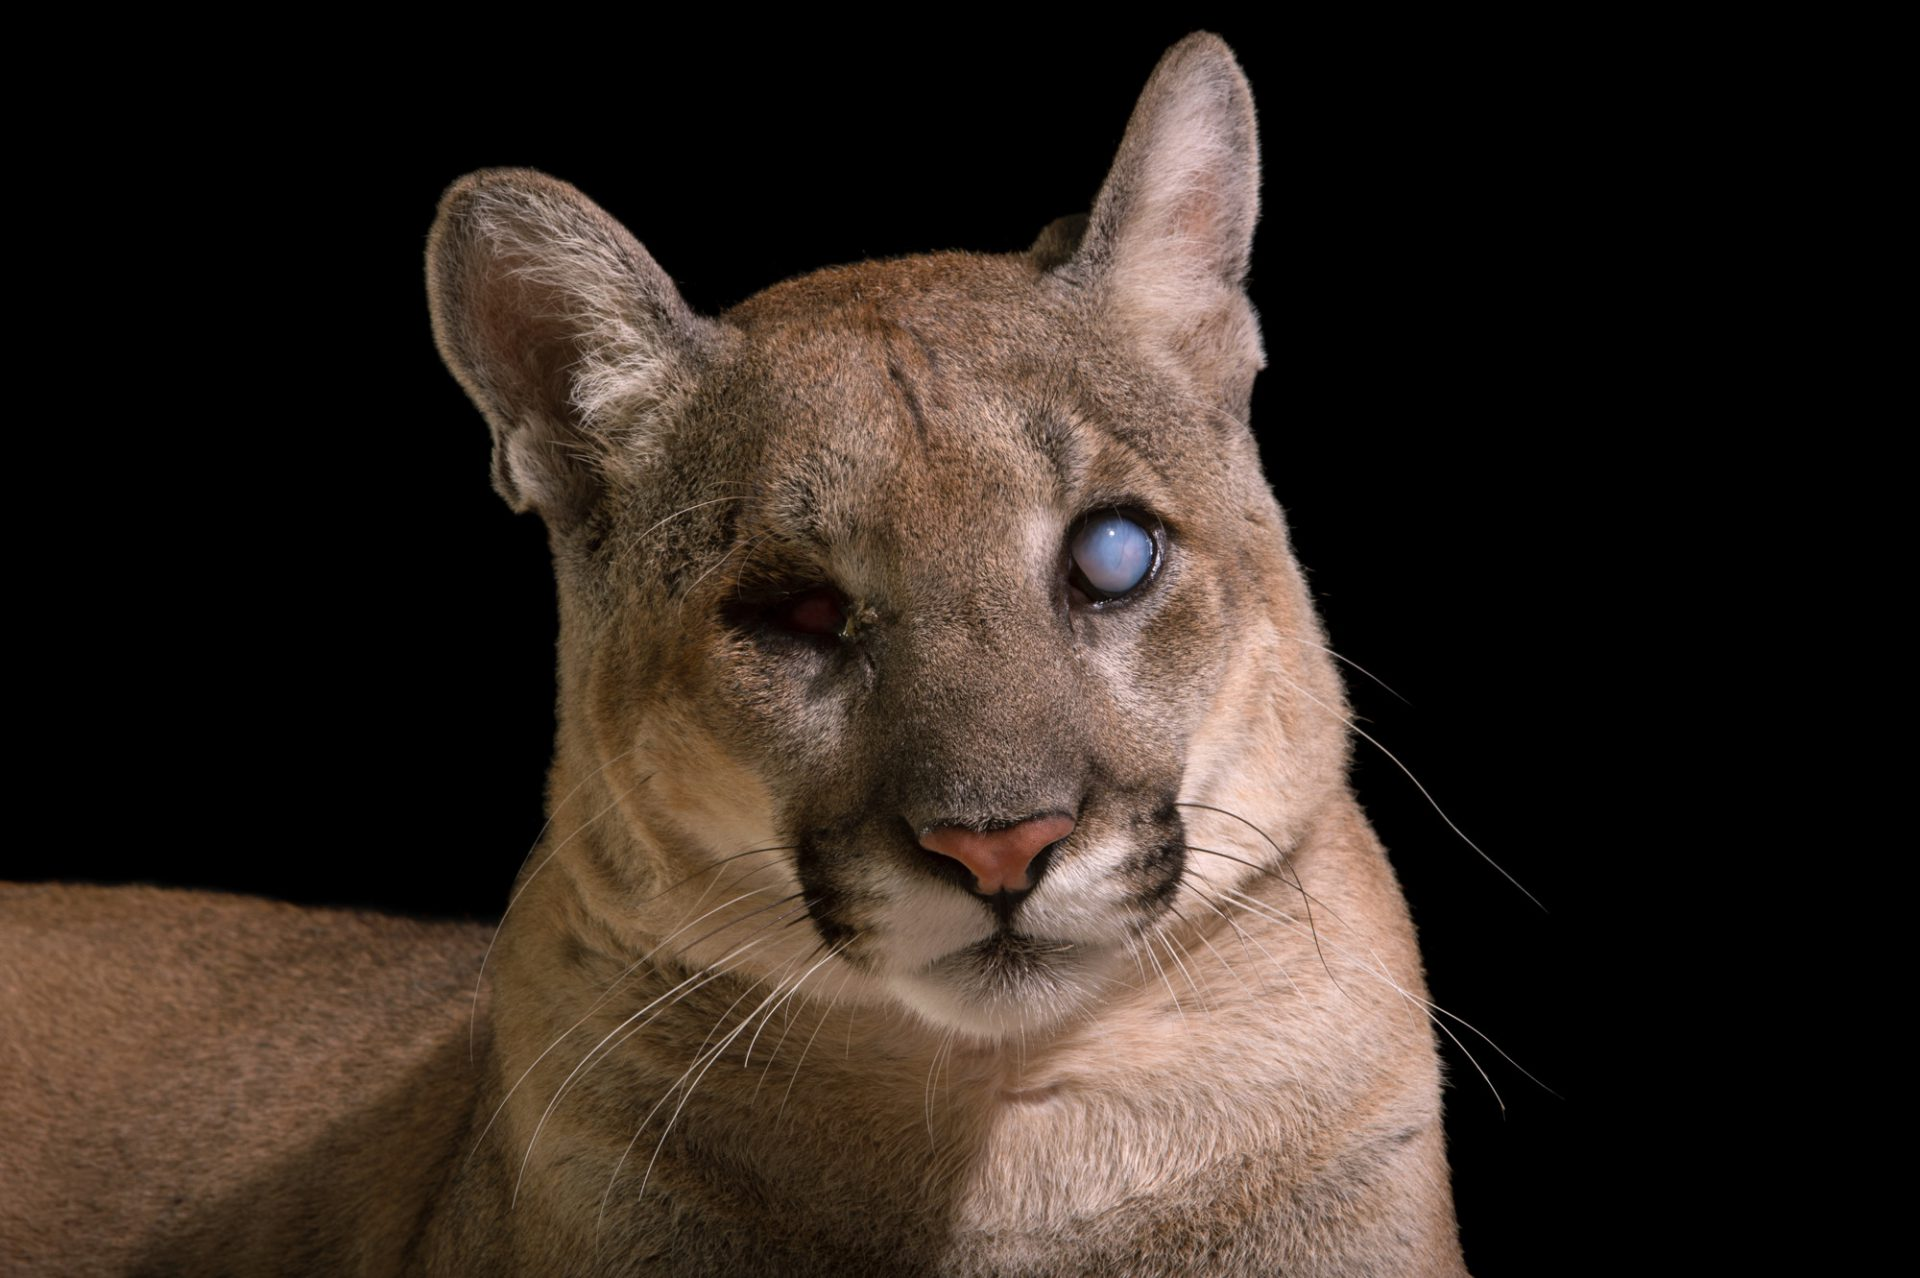 Uno, a federally endangered Florida panther (Puma concolor coryi) at the Naples Zoo. A gunshot wound caused Uno to go blind in 2014.